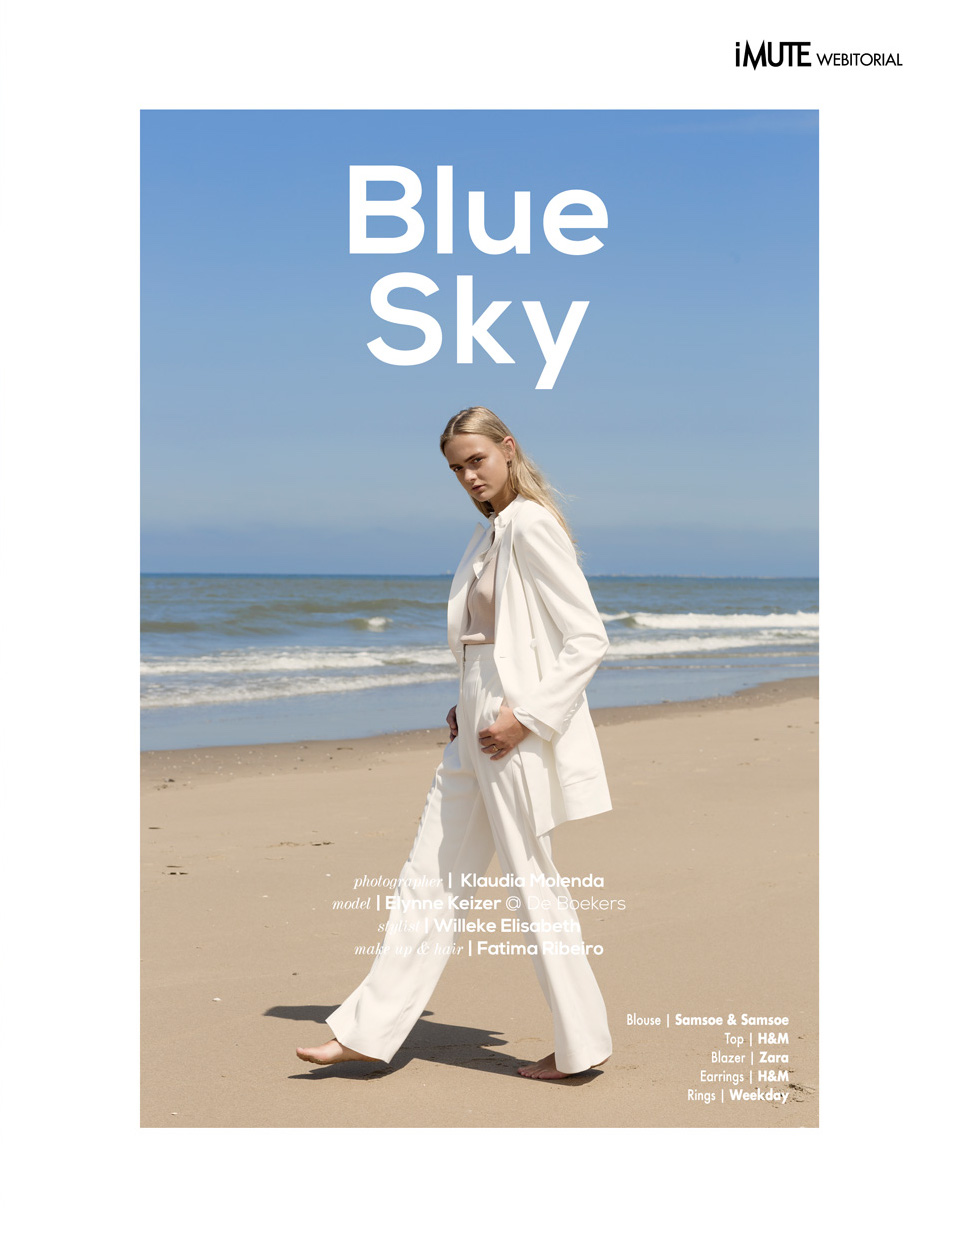 Blue-Sky-webitorial-for-iMute-Magazine